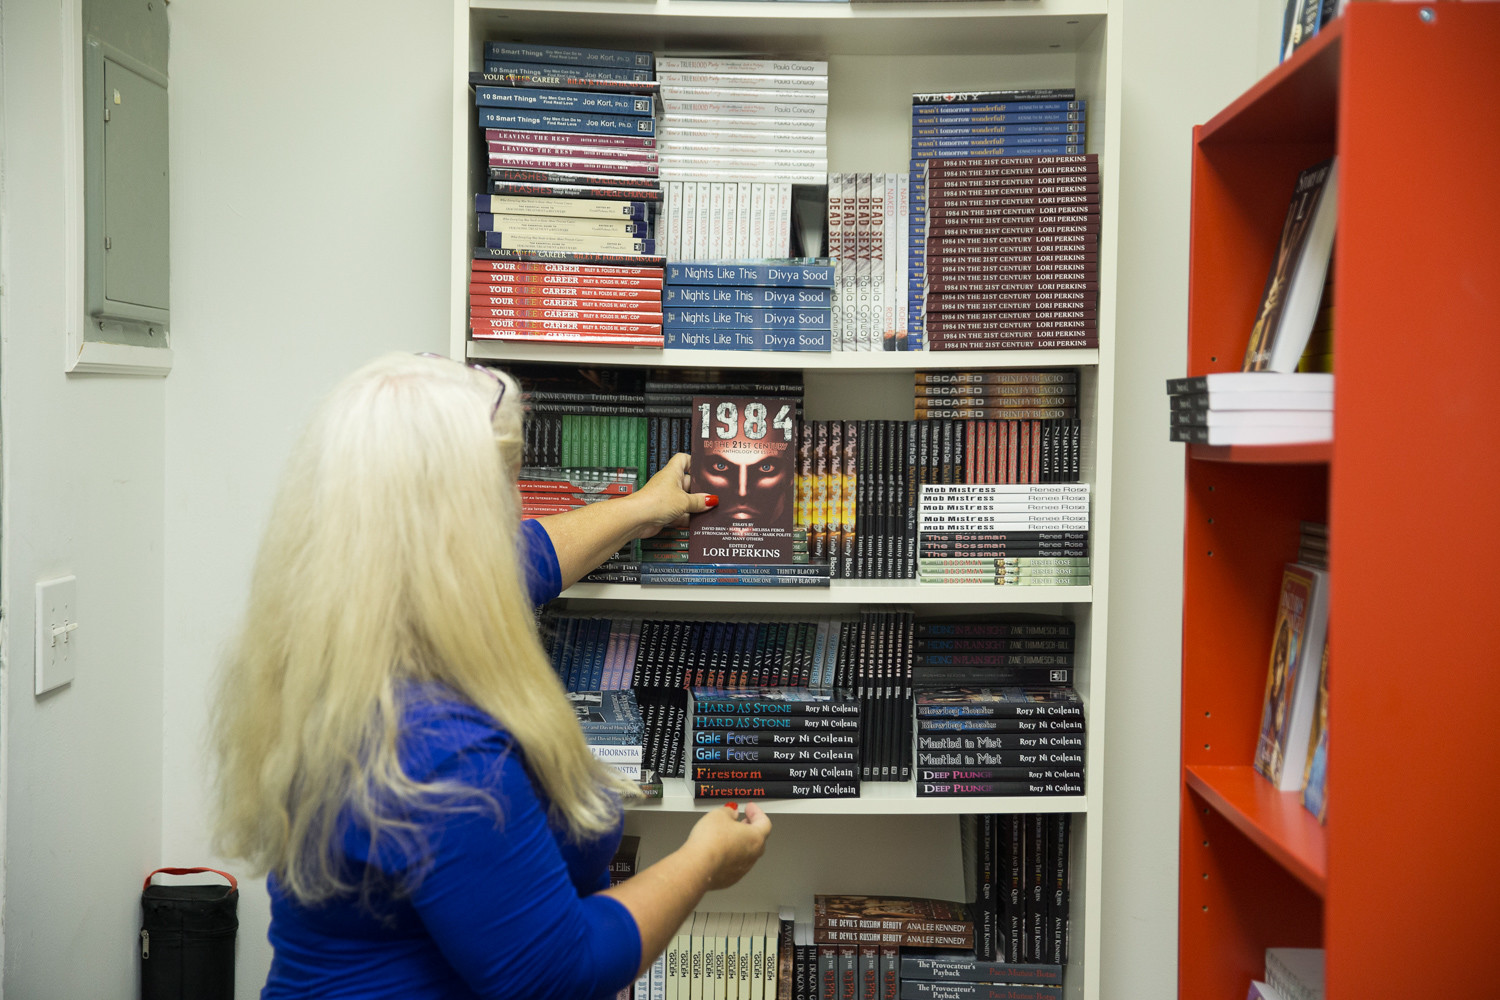 Perkins peruses a bookshelf in the Riverdale Avenue Books office. Perkins is publishing a collection of essays in response to the Harvey Weinstein controversy. The book includes stories from people who have been victims of sexual harassment and assault.